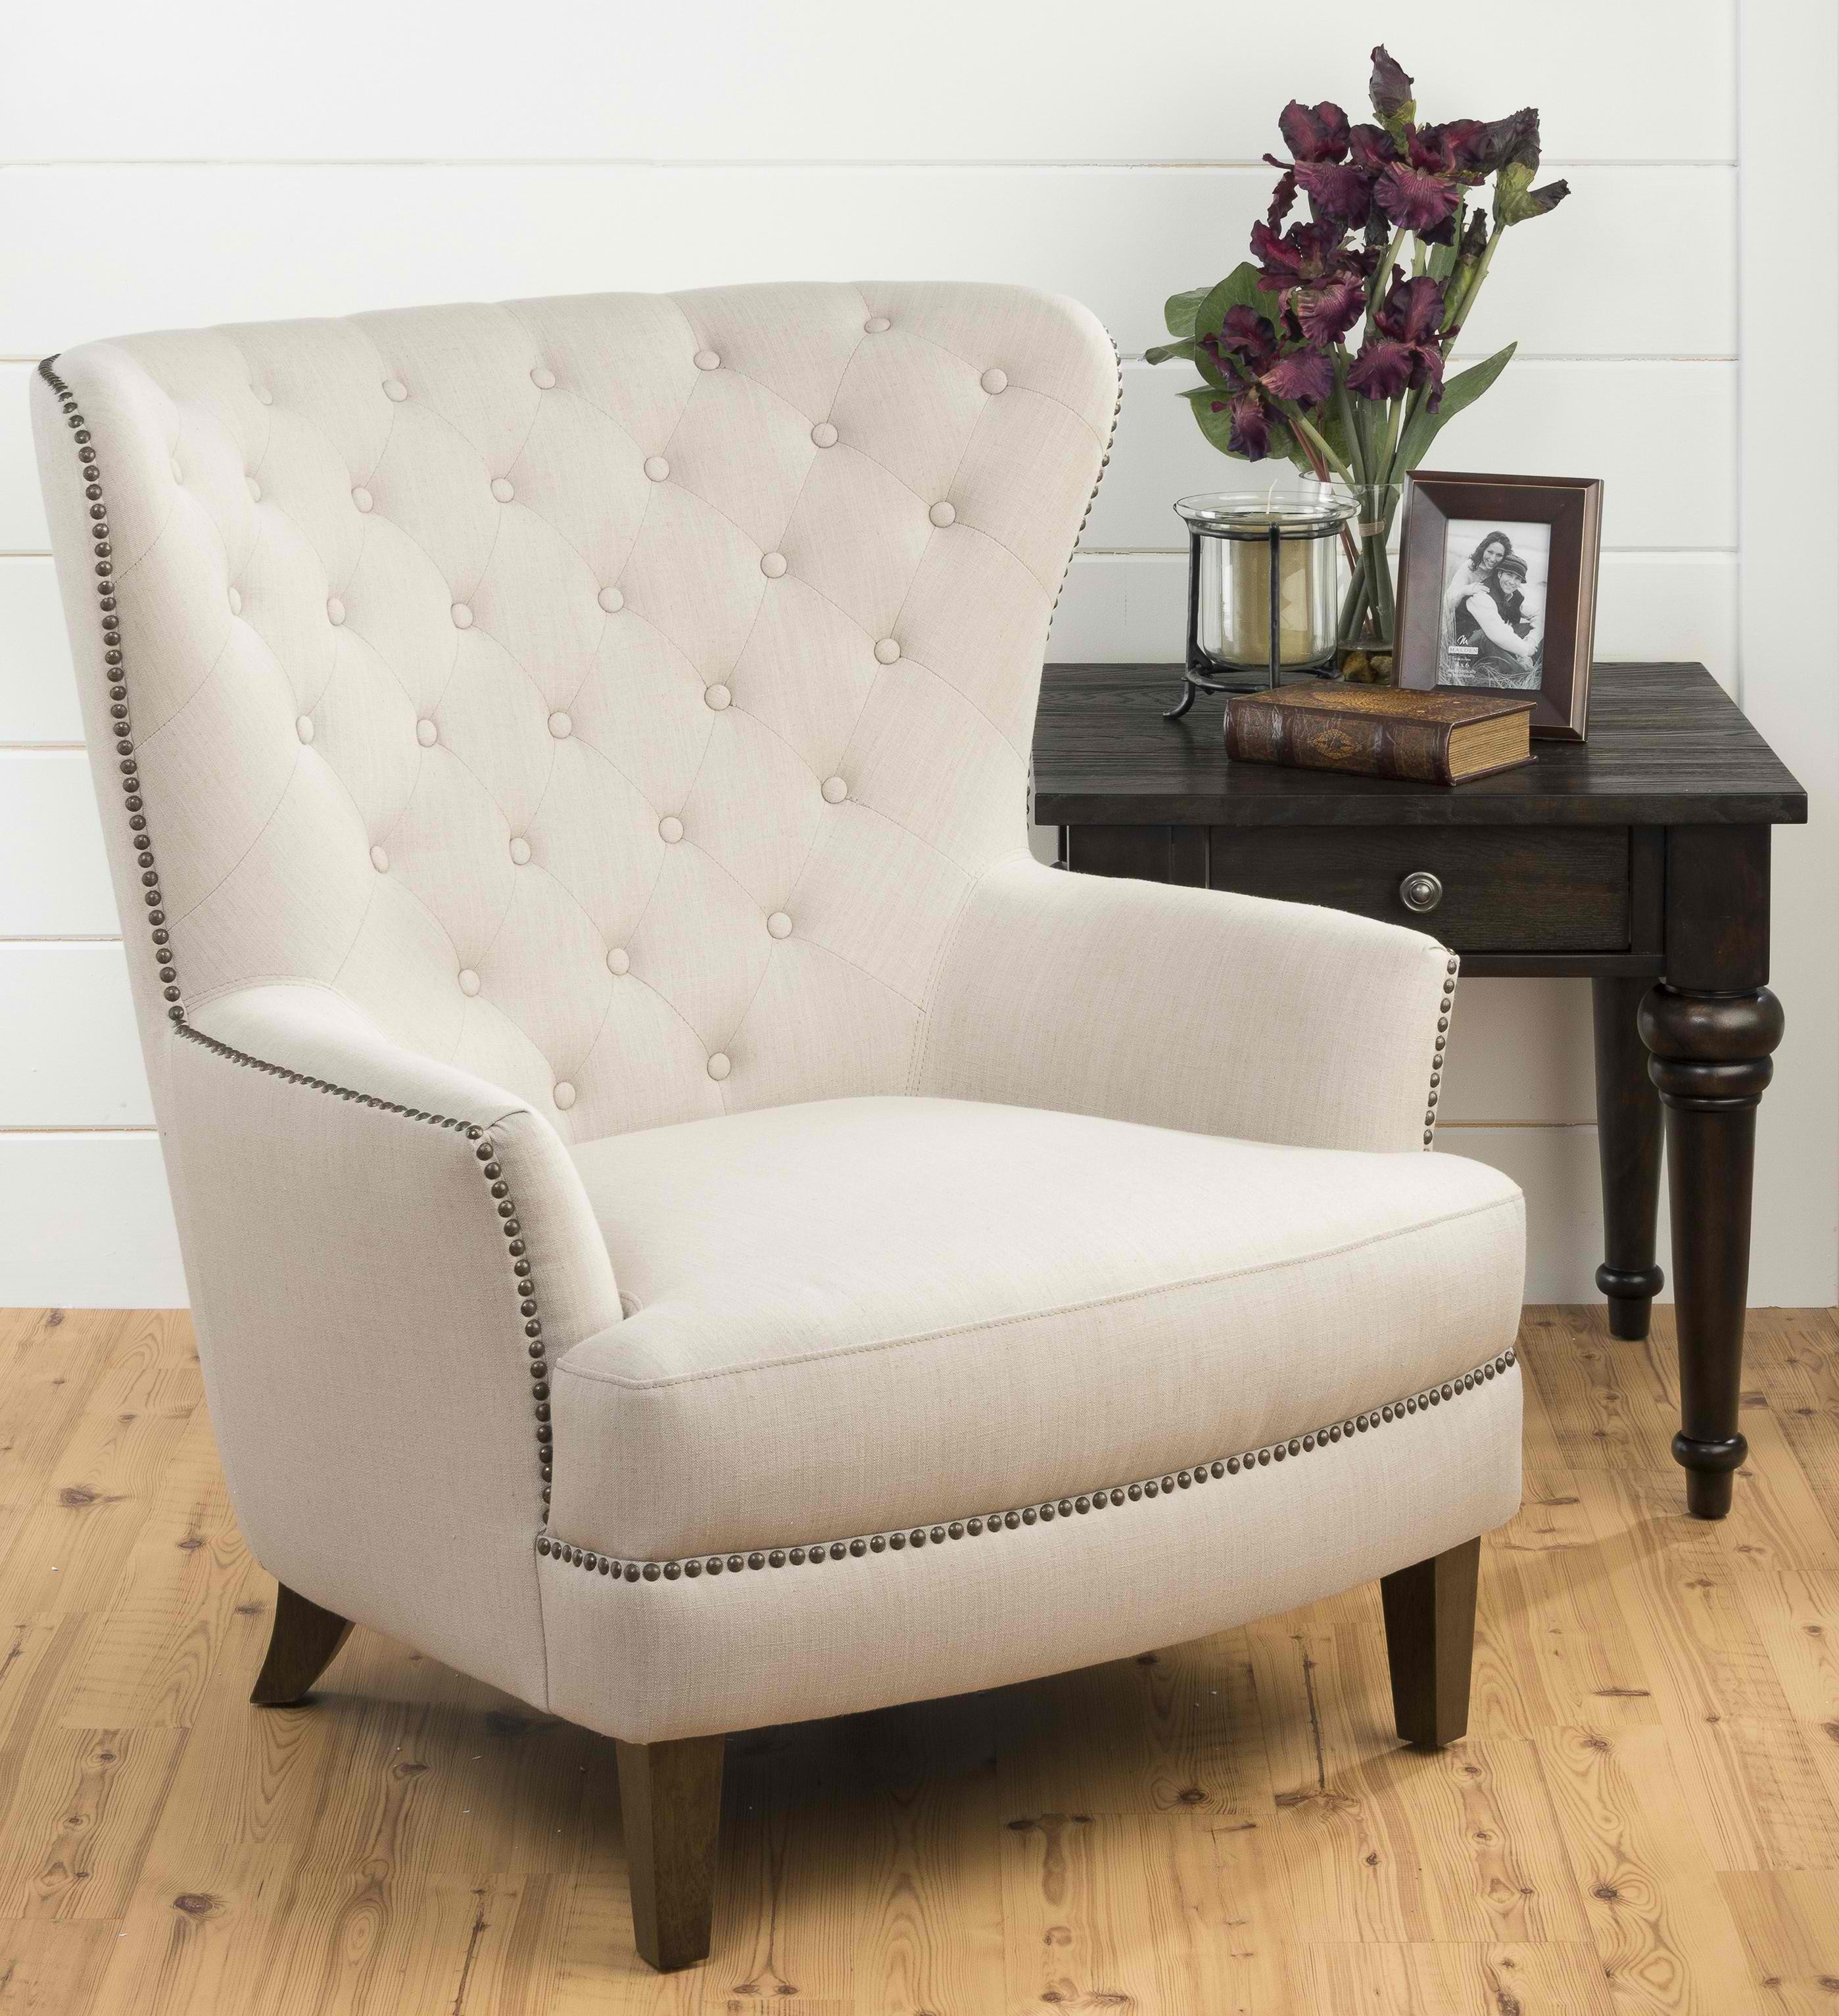 Oversized Accent Chair  Gives Luxurious Touch  Homesfeed. Decorative Garden Bridge. Barn Wood Wall Decor. Ideas For Decorating Bathroom. Living Room On A Budget. Salt Therapy Room. Living Room Idea. Room Partition Wall. Family Reunion Decorations